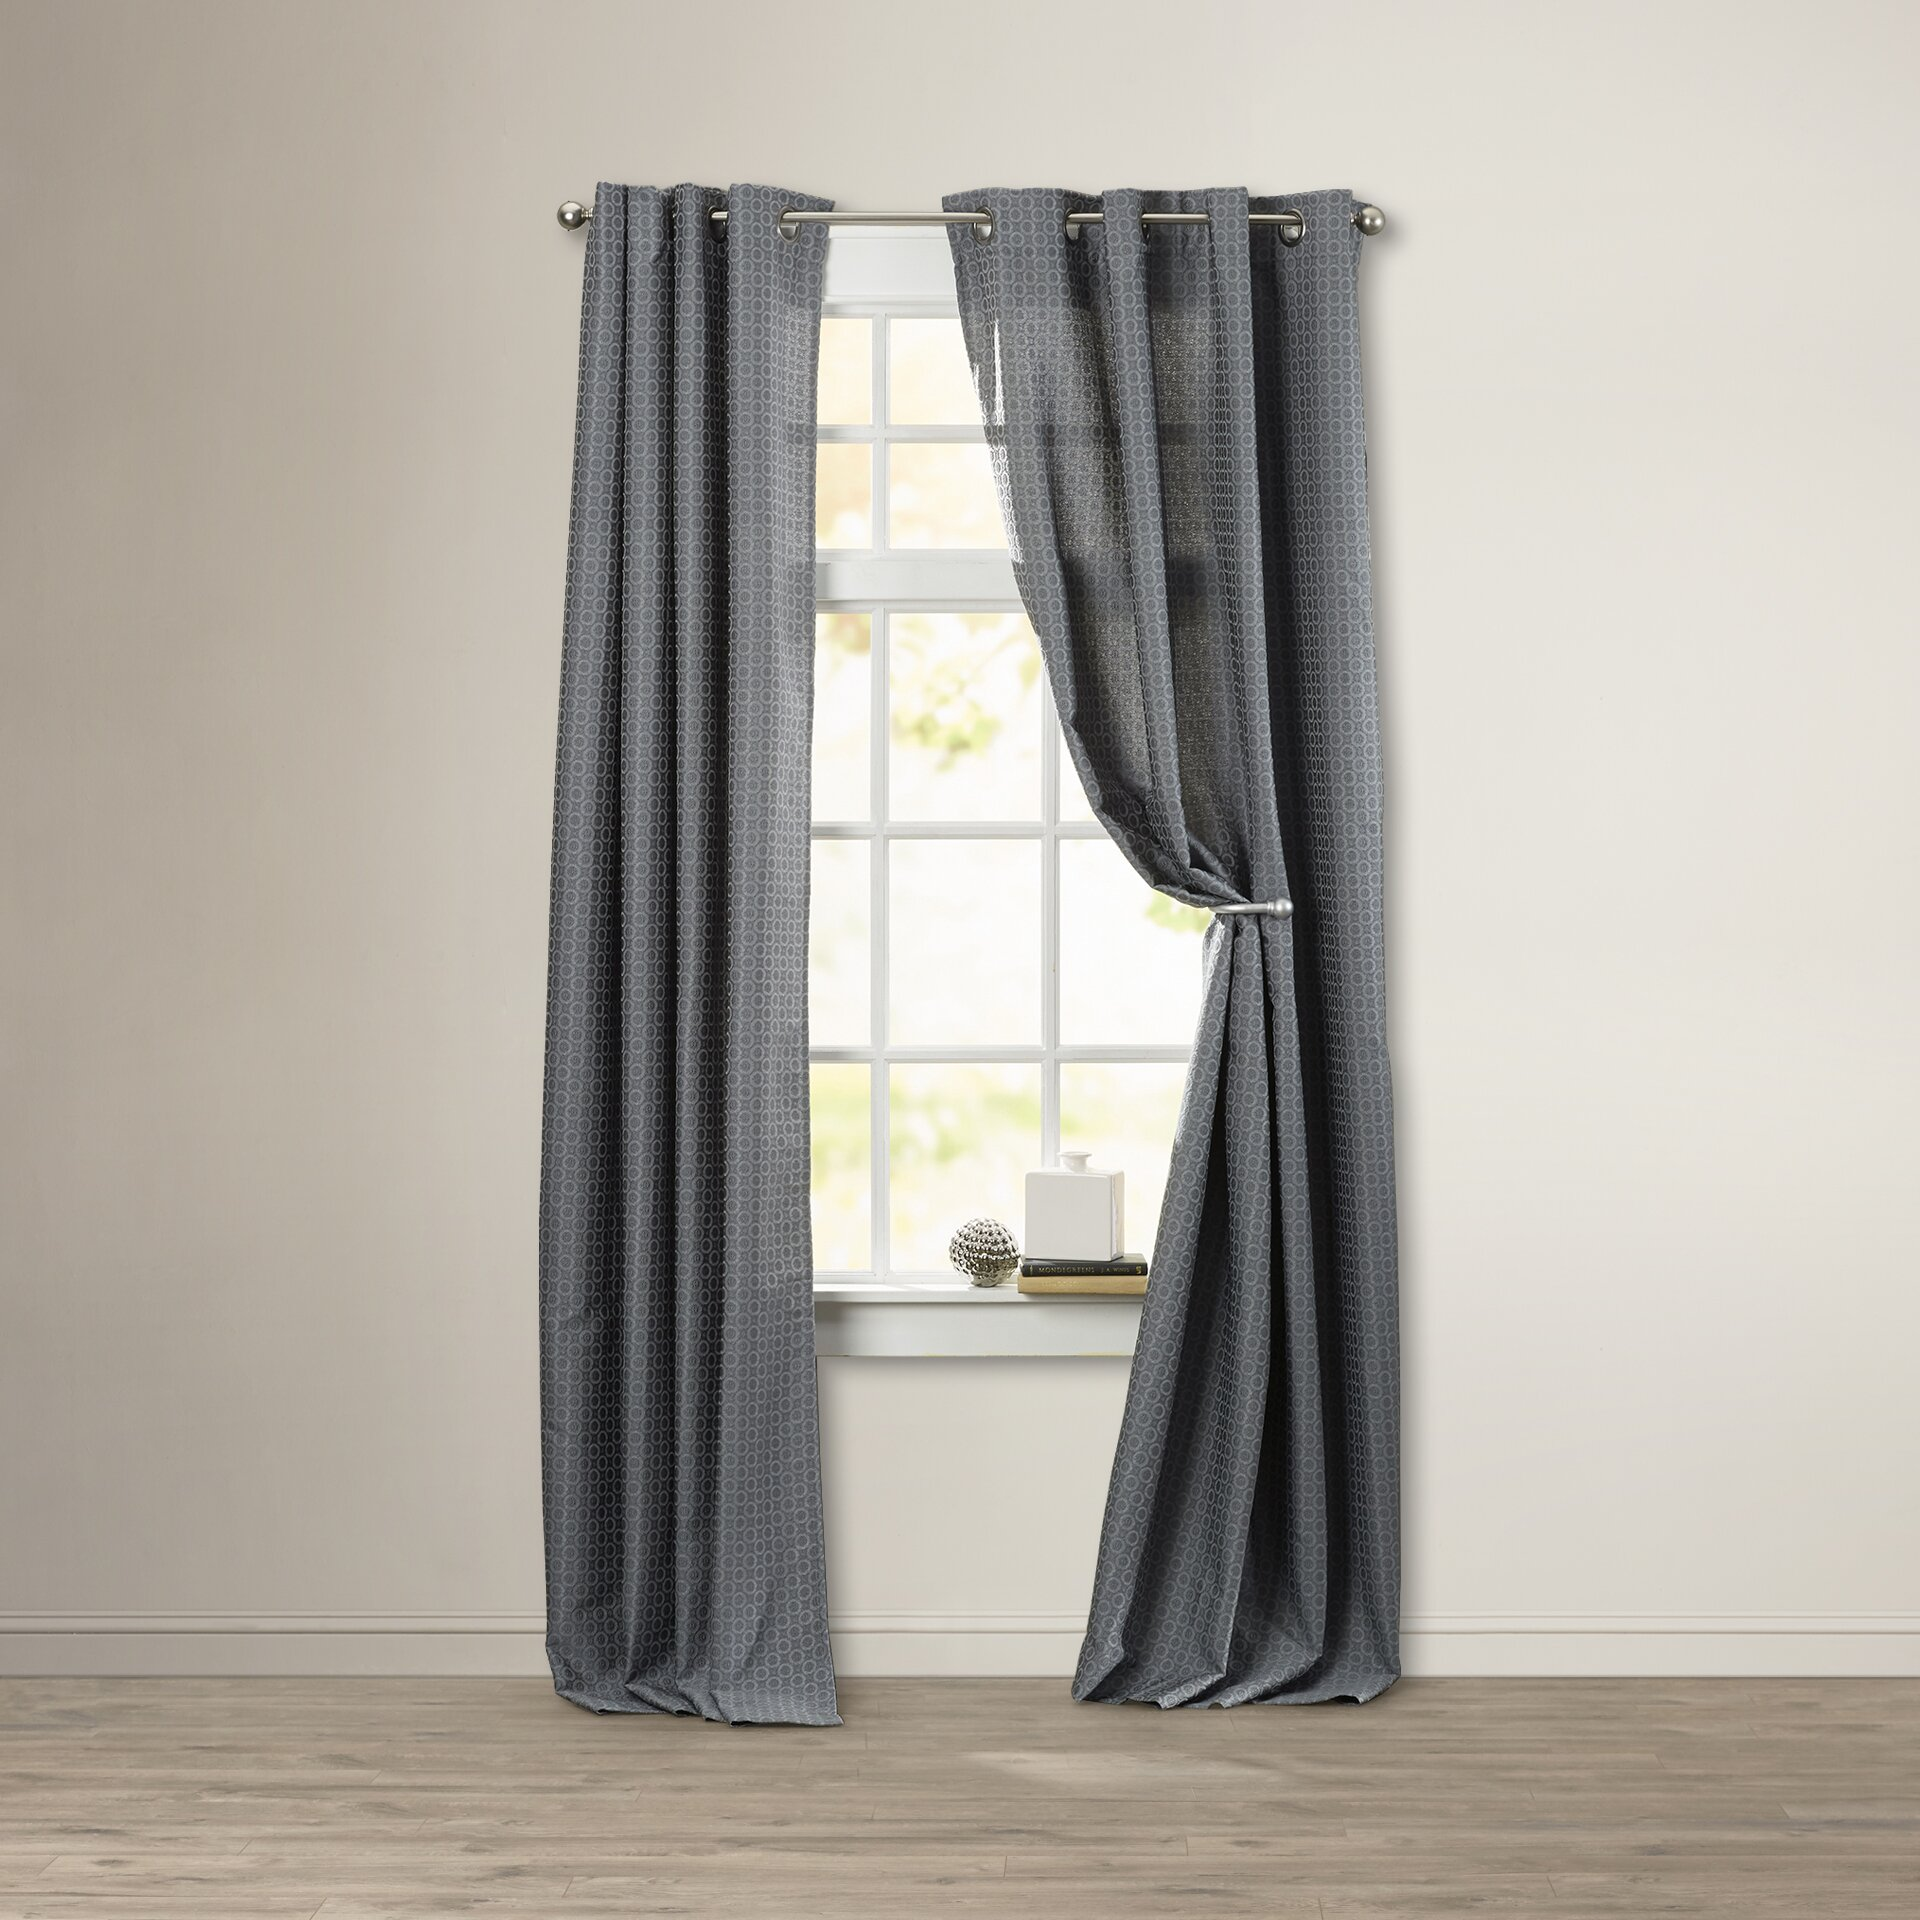 Threshold linen grommet sheer curtain panel product details page - Arrant Solid Semi Sheer Grommet Single Curtain Panel